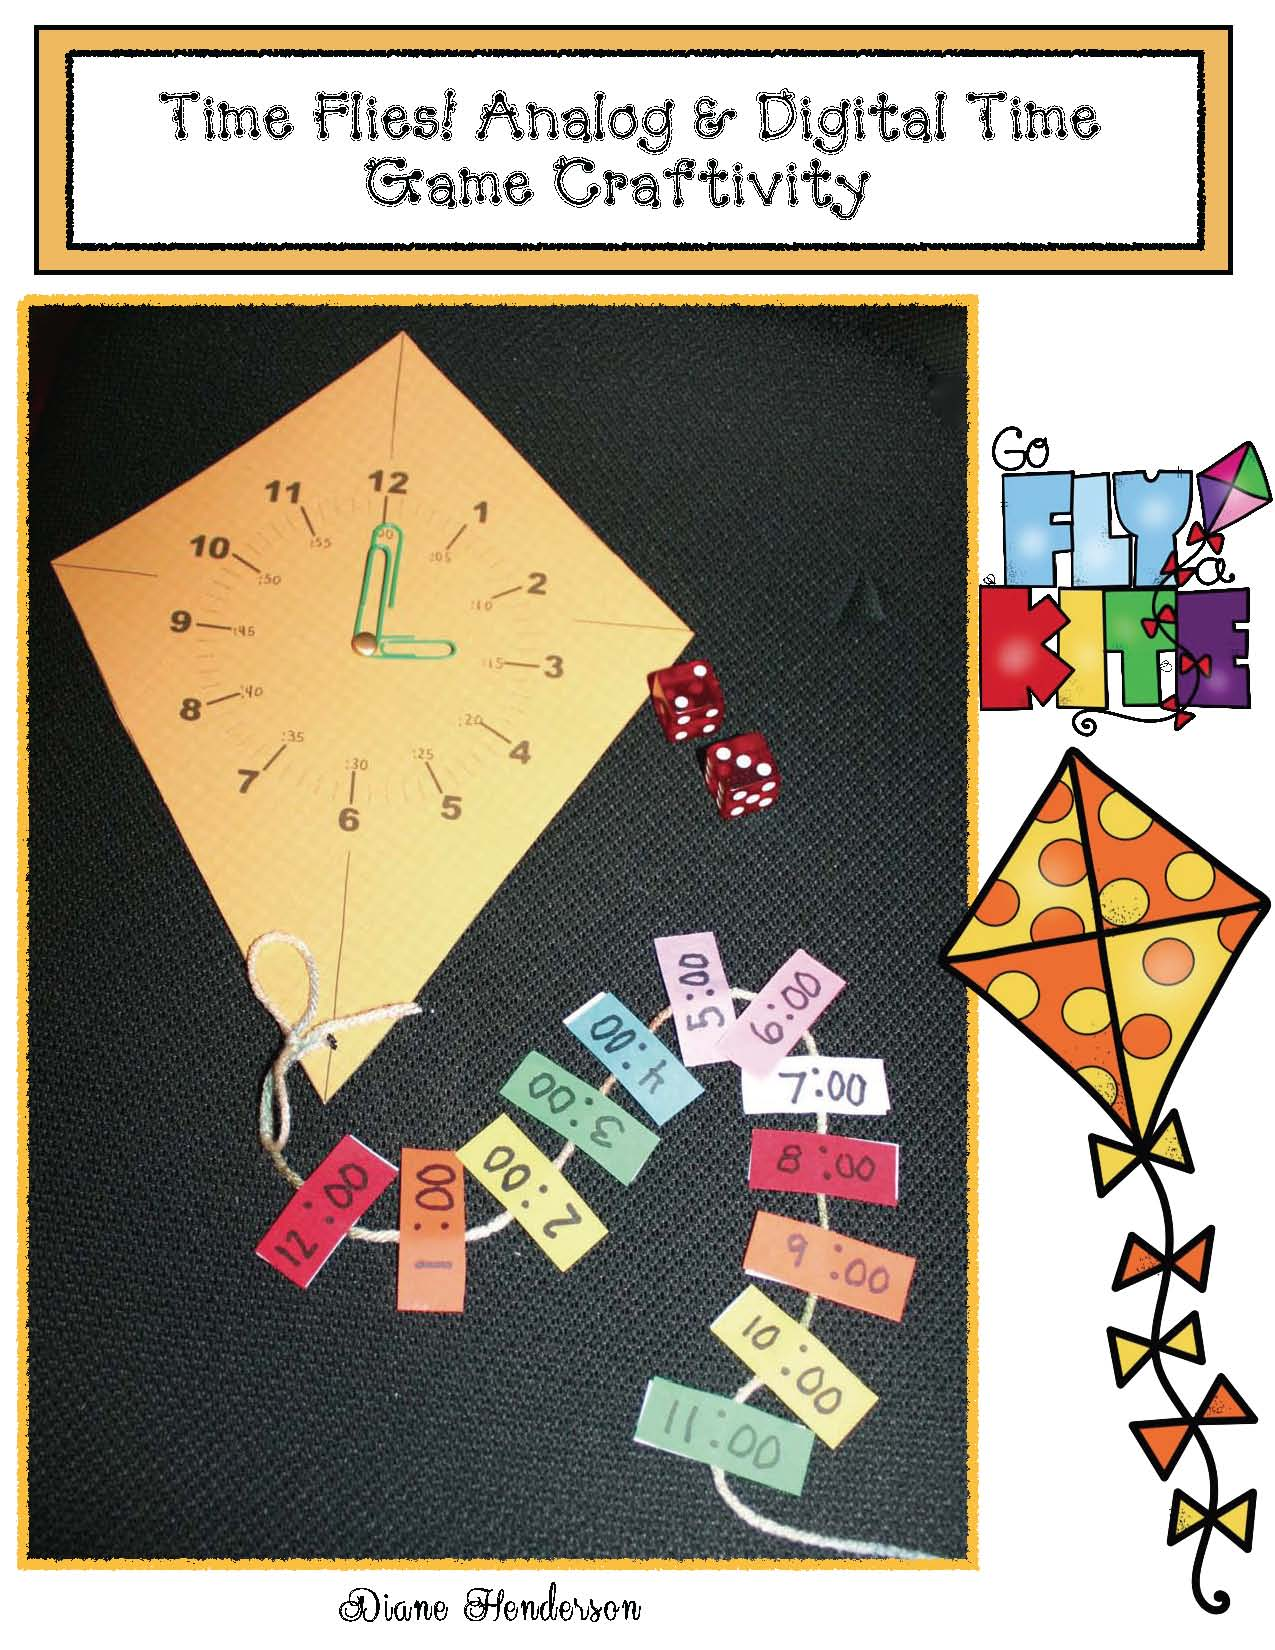 kite crafts, kite activities, March bulletin board ideas, glyphs, kite glyph, shamrock glyph, analog and digital time games, telling time to the hour activities, patterning activities, crafts for March, print and go worksheets for spring